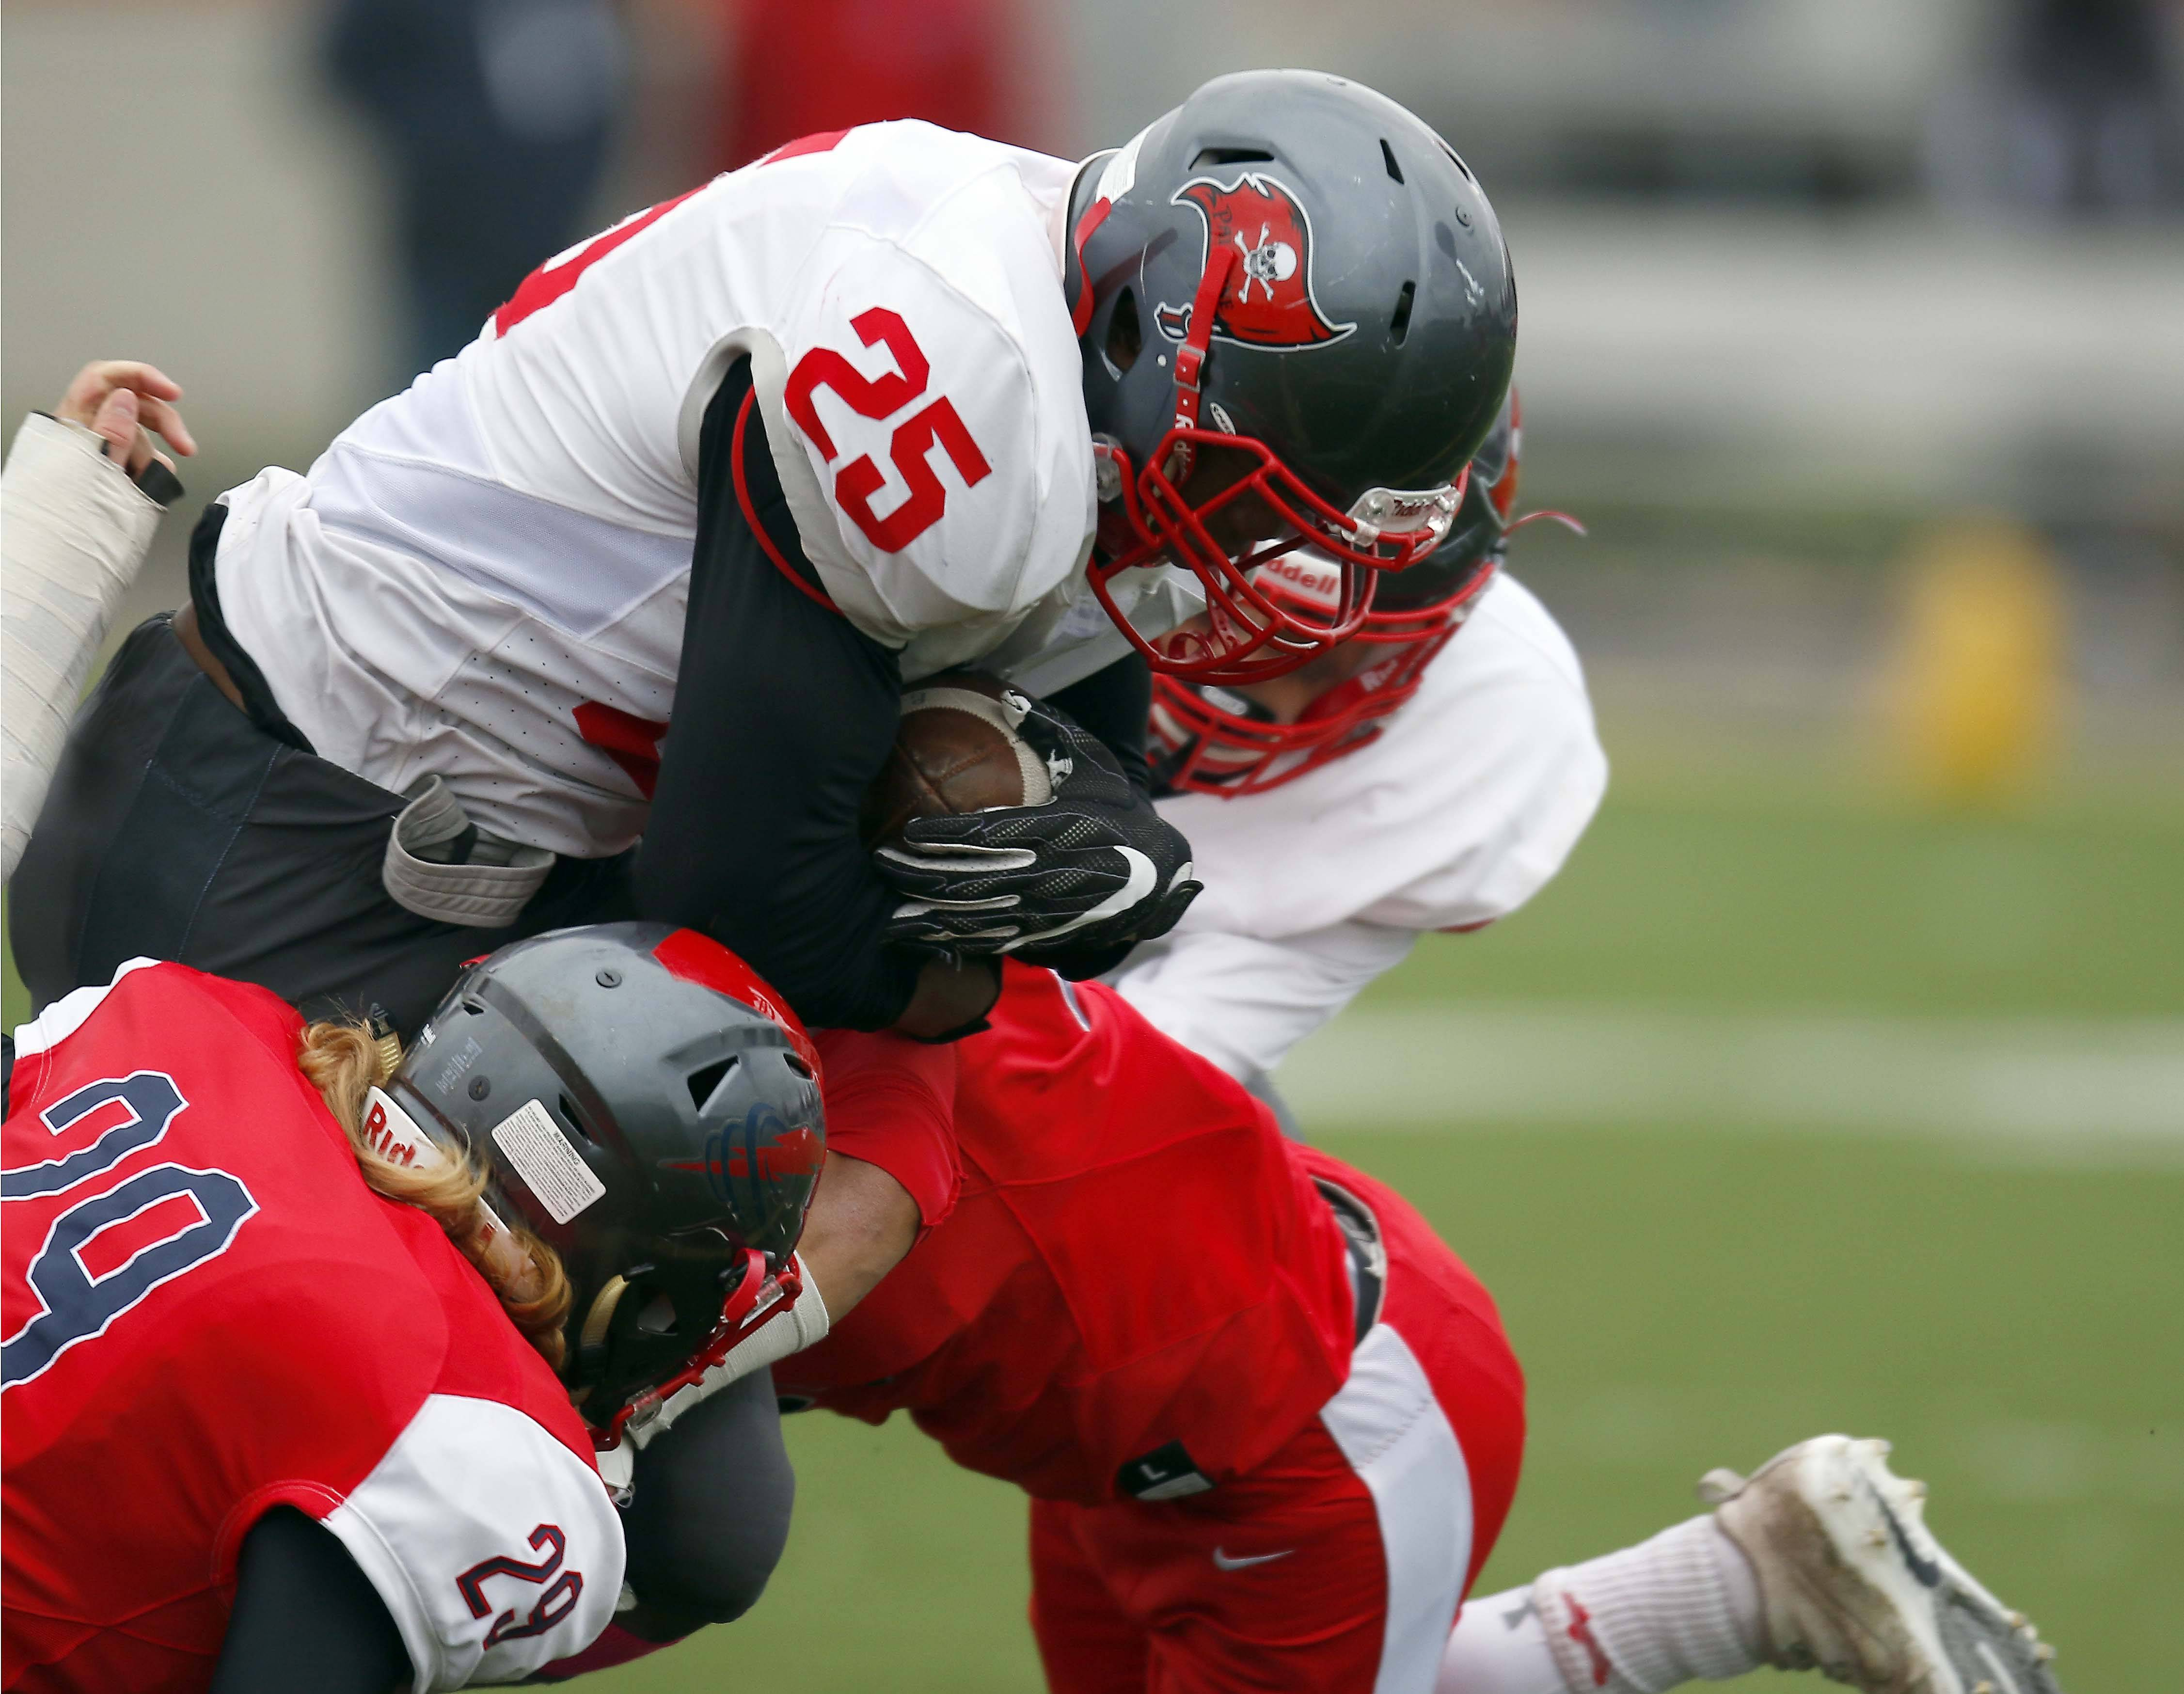 Palatine's Marcus Stoudemire (25) is hit by South Elgin's Jake Donat (29) and Saturday during Palatine vs. South Elgin Class 8A football playoffs at Millennium Field in Streamwood.